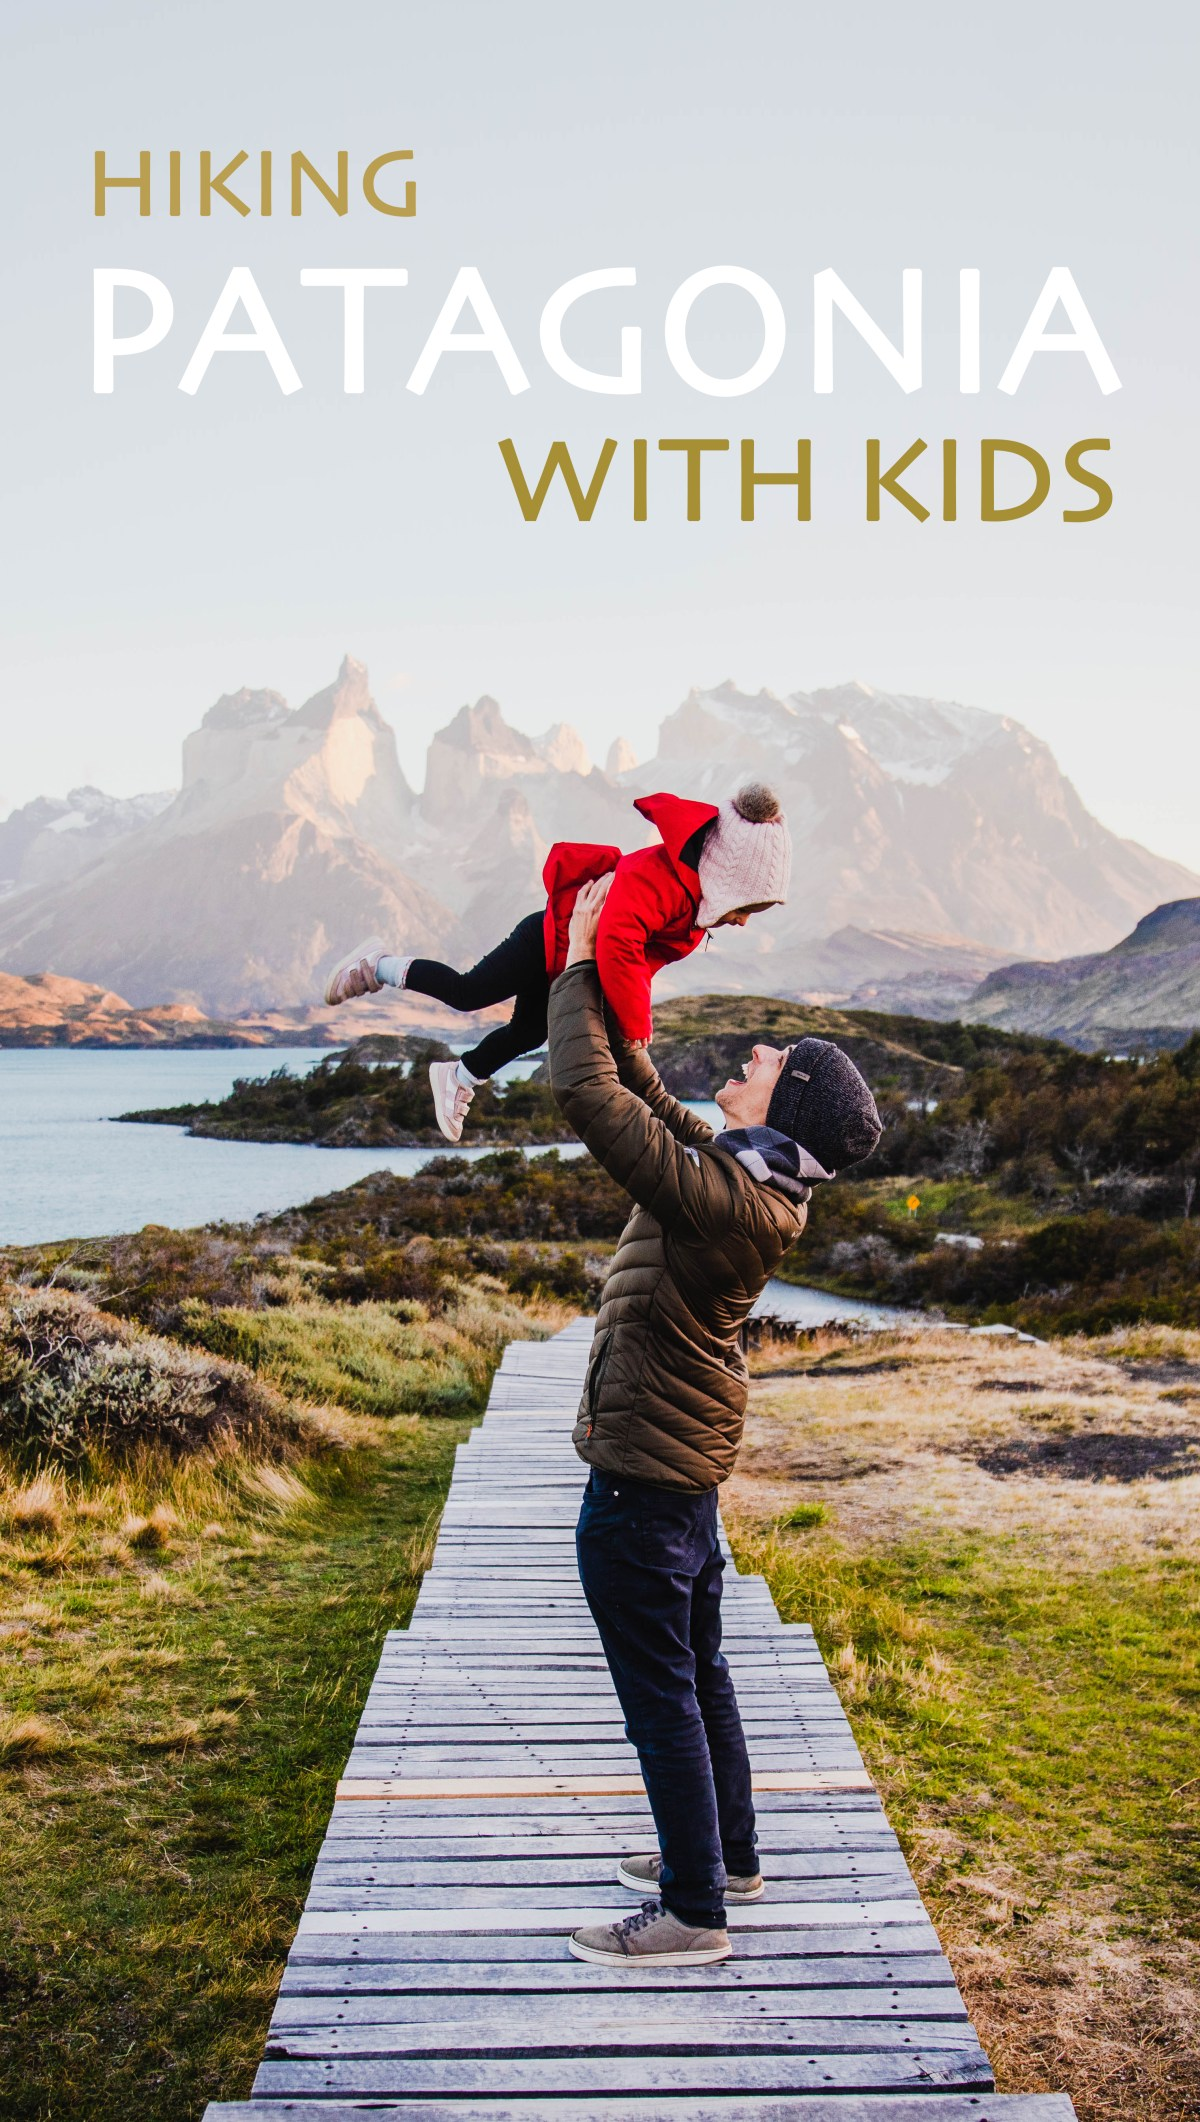 Hiking Patagonia with kids